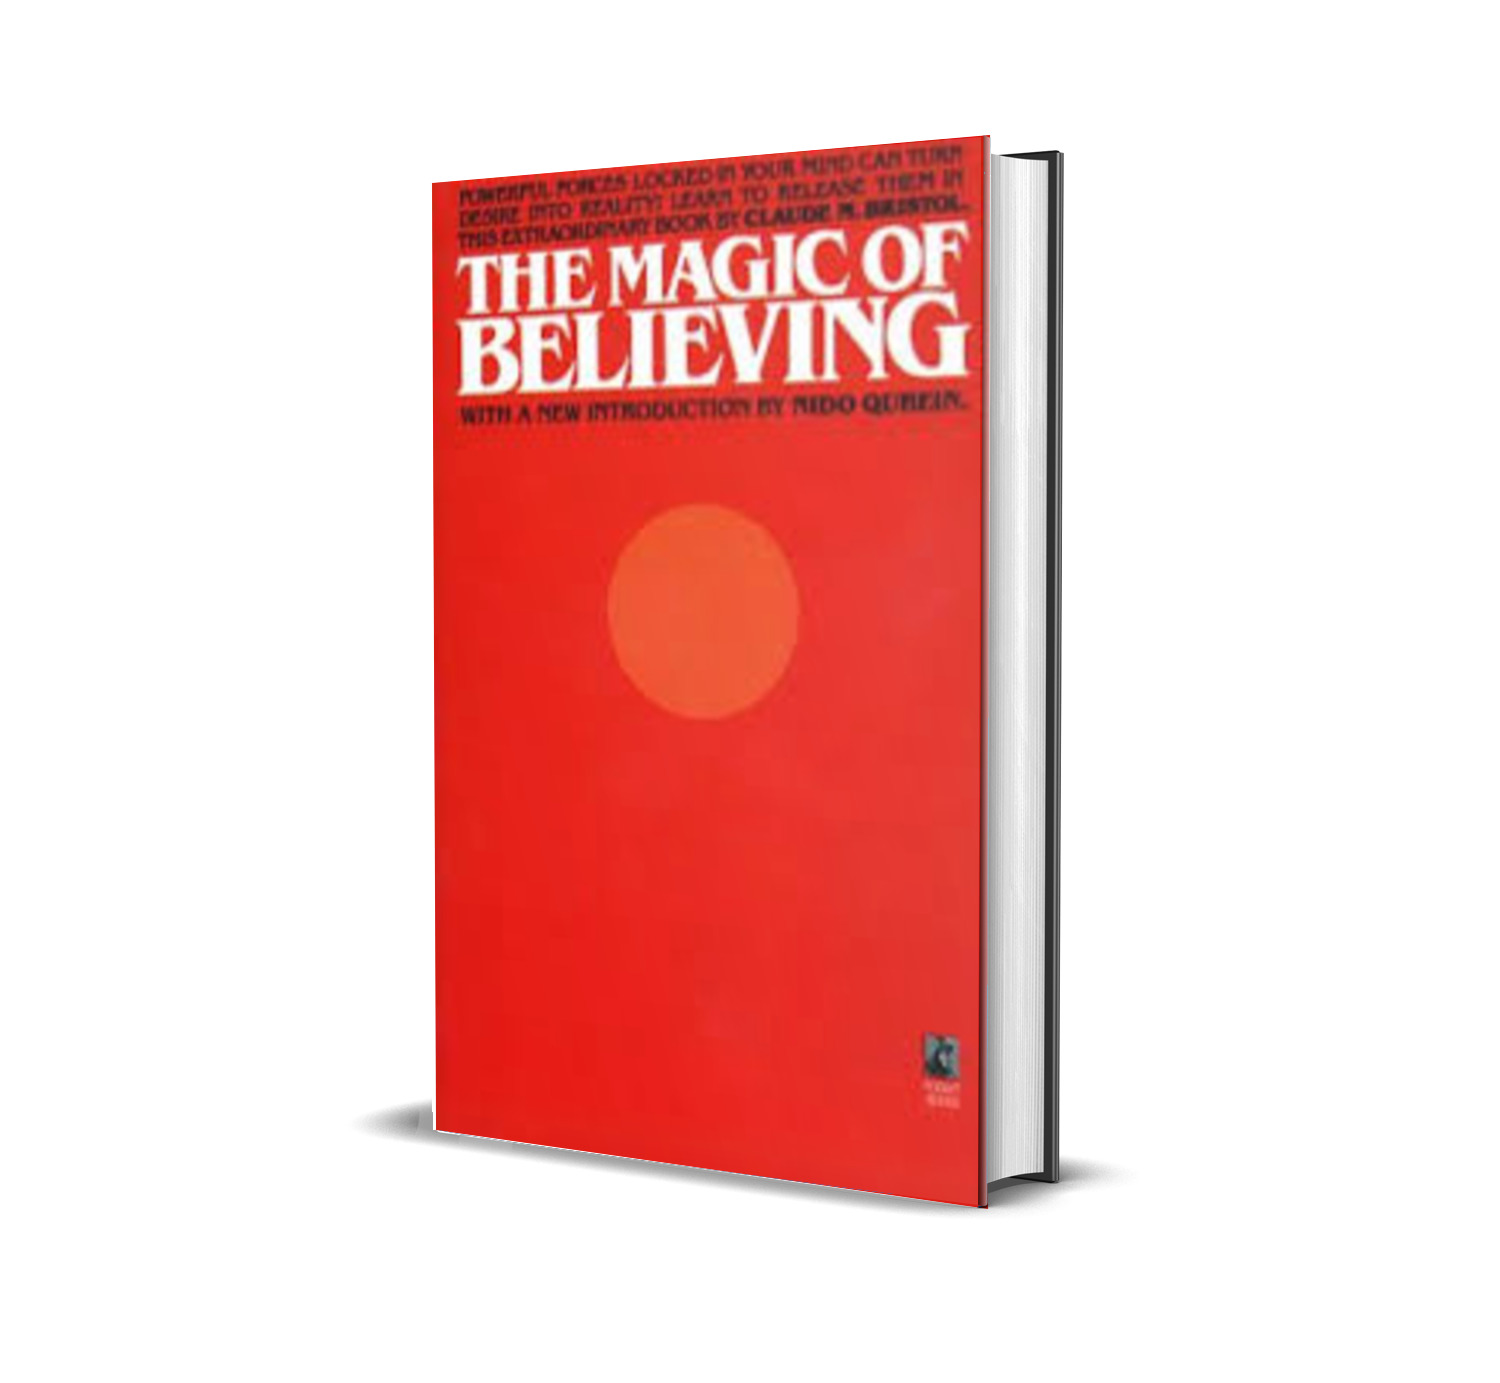 The magic of believing- Nido Qubein